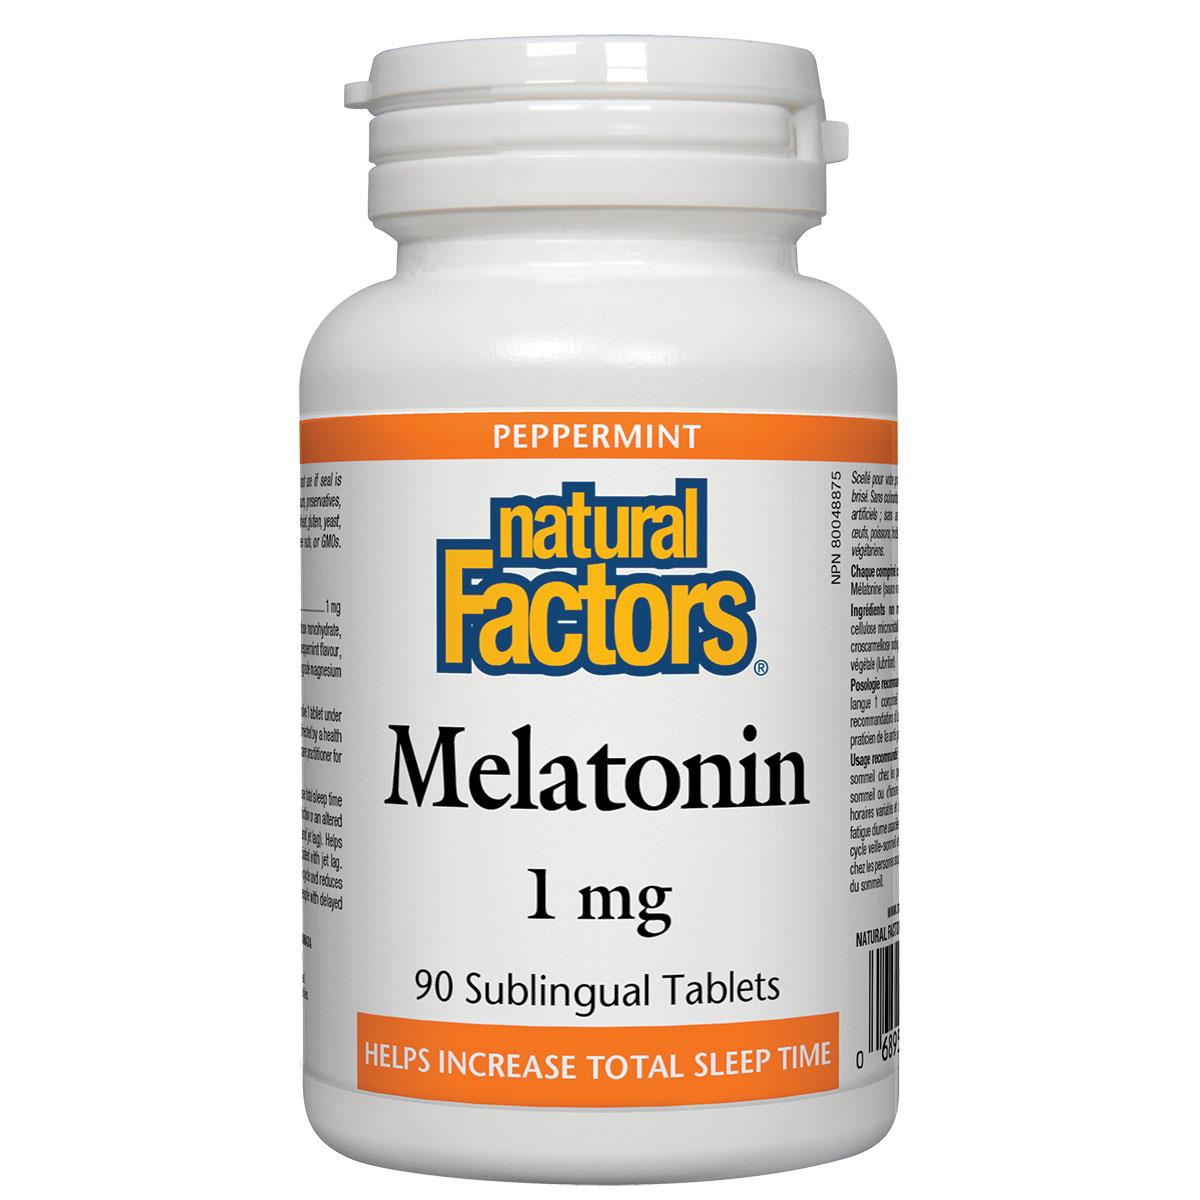 Natural Factors Melatonin (Peppermint), 1mg, 90 Sublingual Tablets